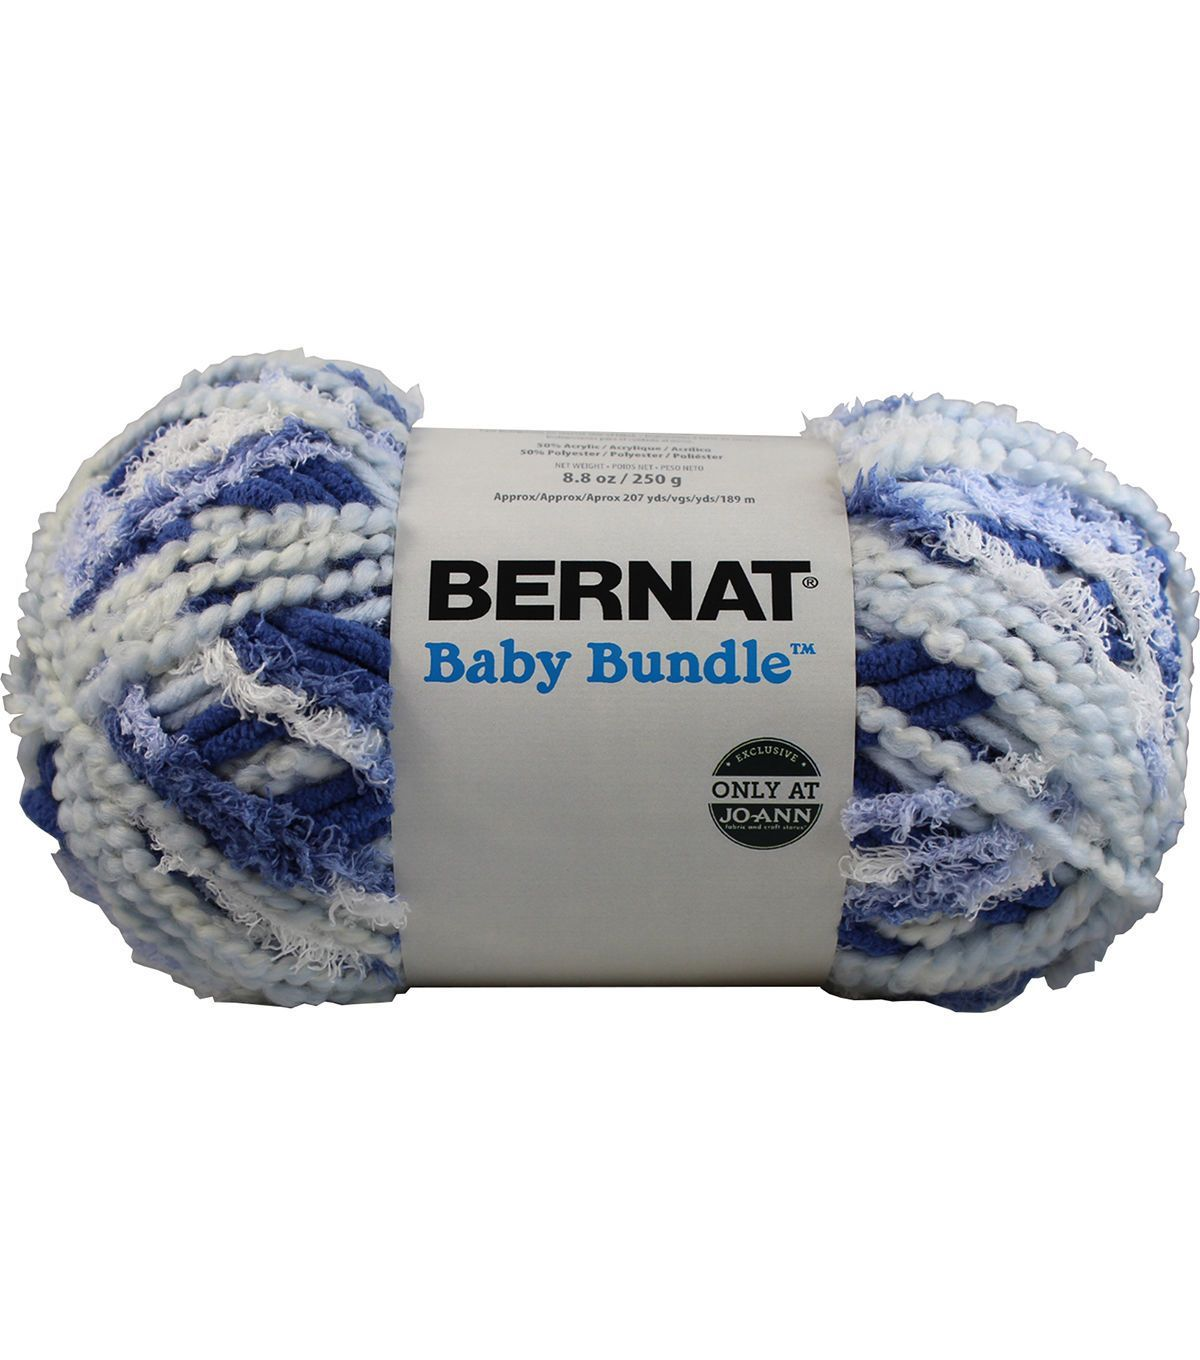 Bernat Baby Bundle Yarn Bernat Yarn Yarn For Sale